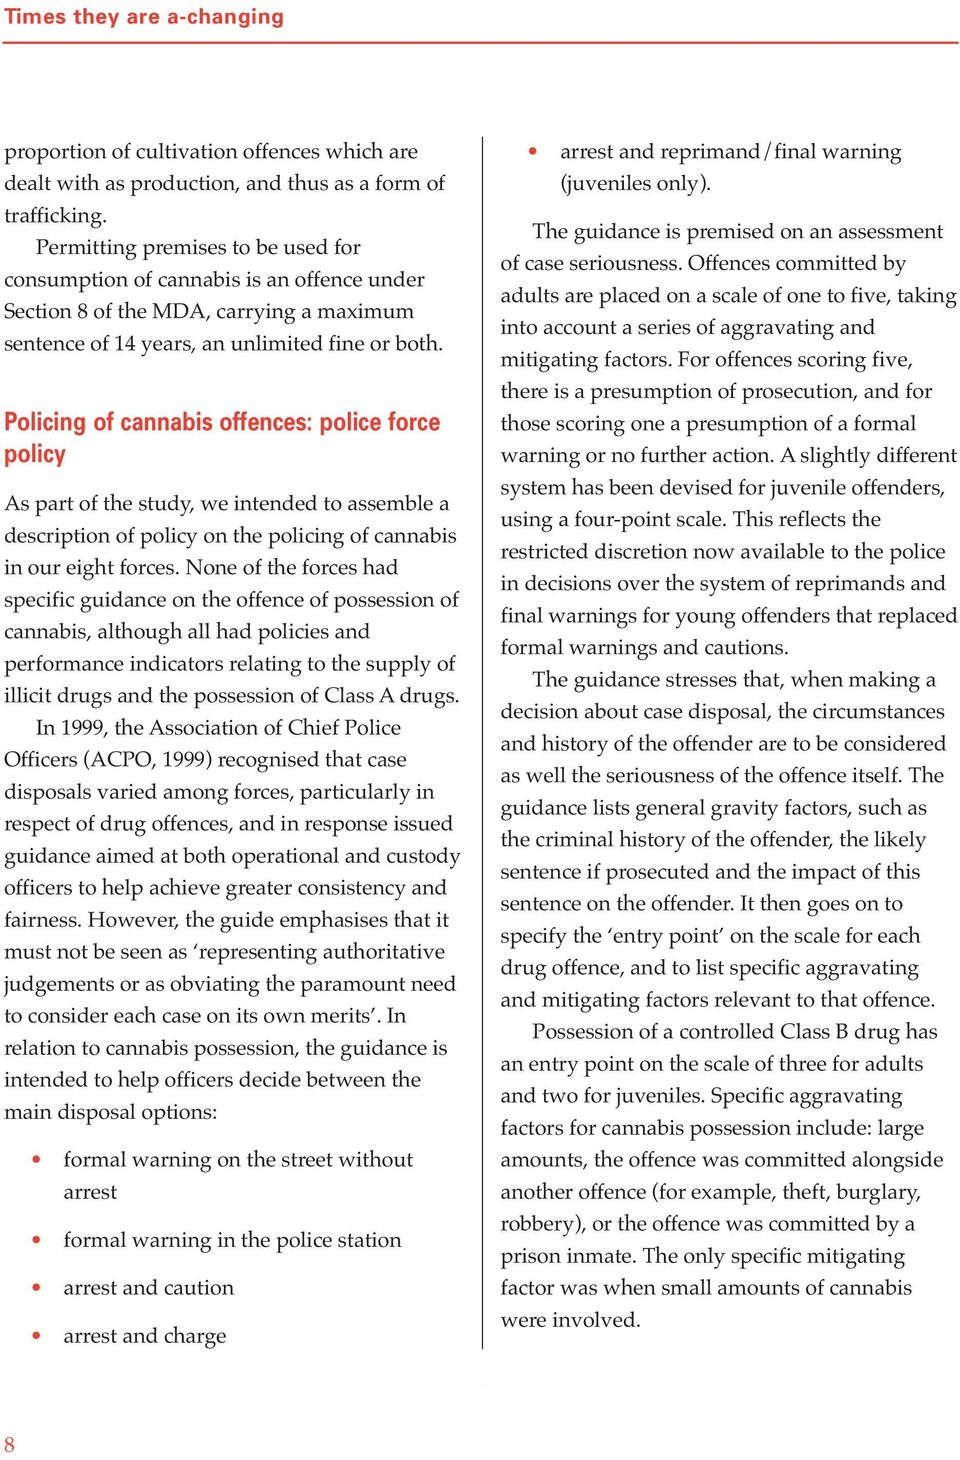 Policing of cannabis offences: police force policy As part of the study, we intended to assemble a description of policy on the policing of cannabis in our eight forces.